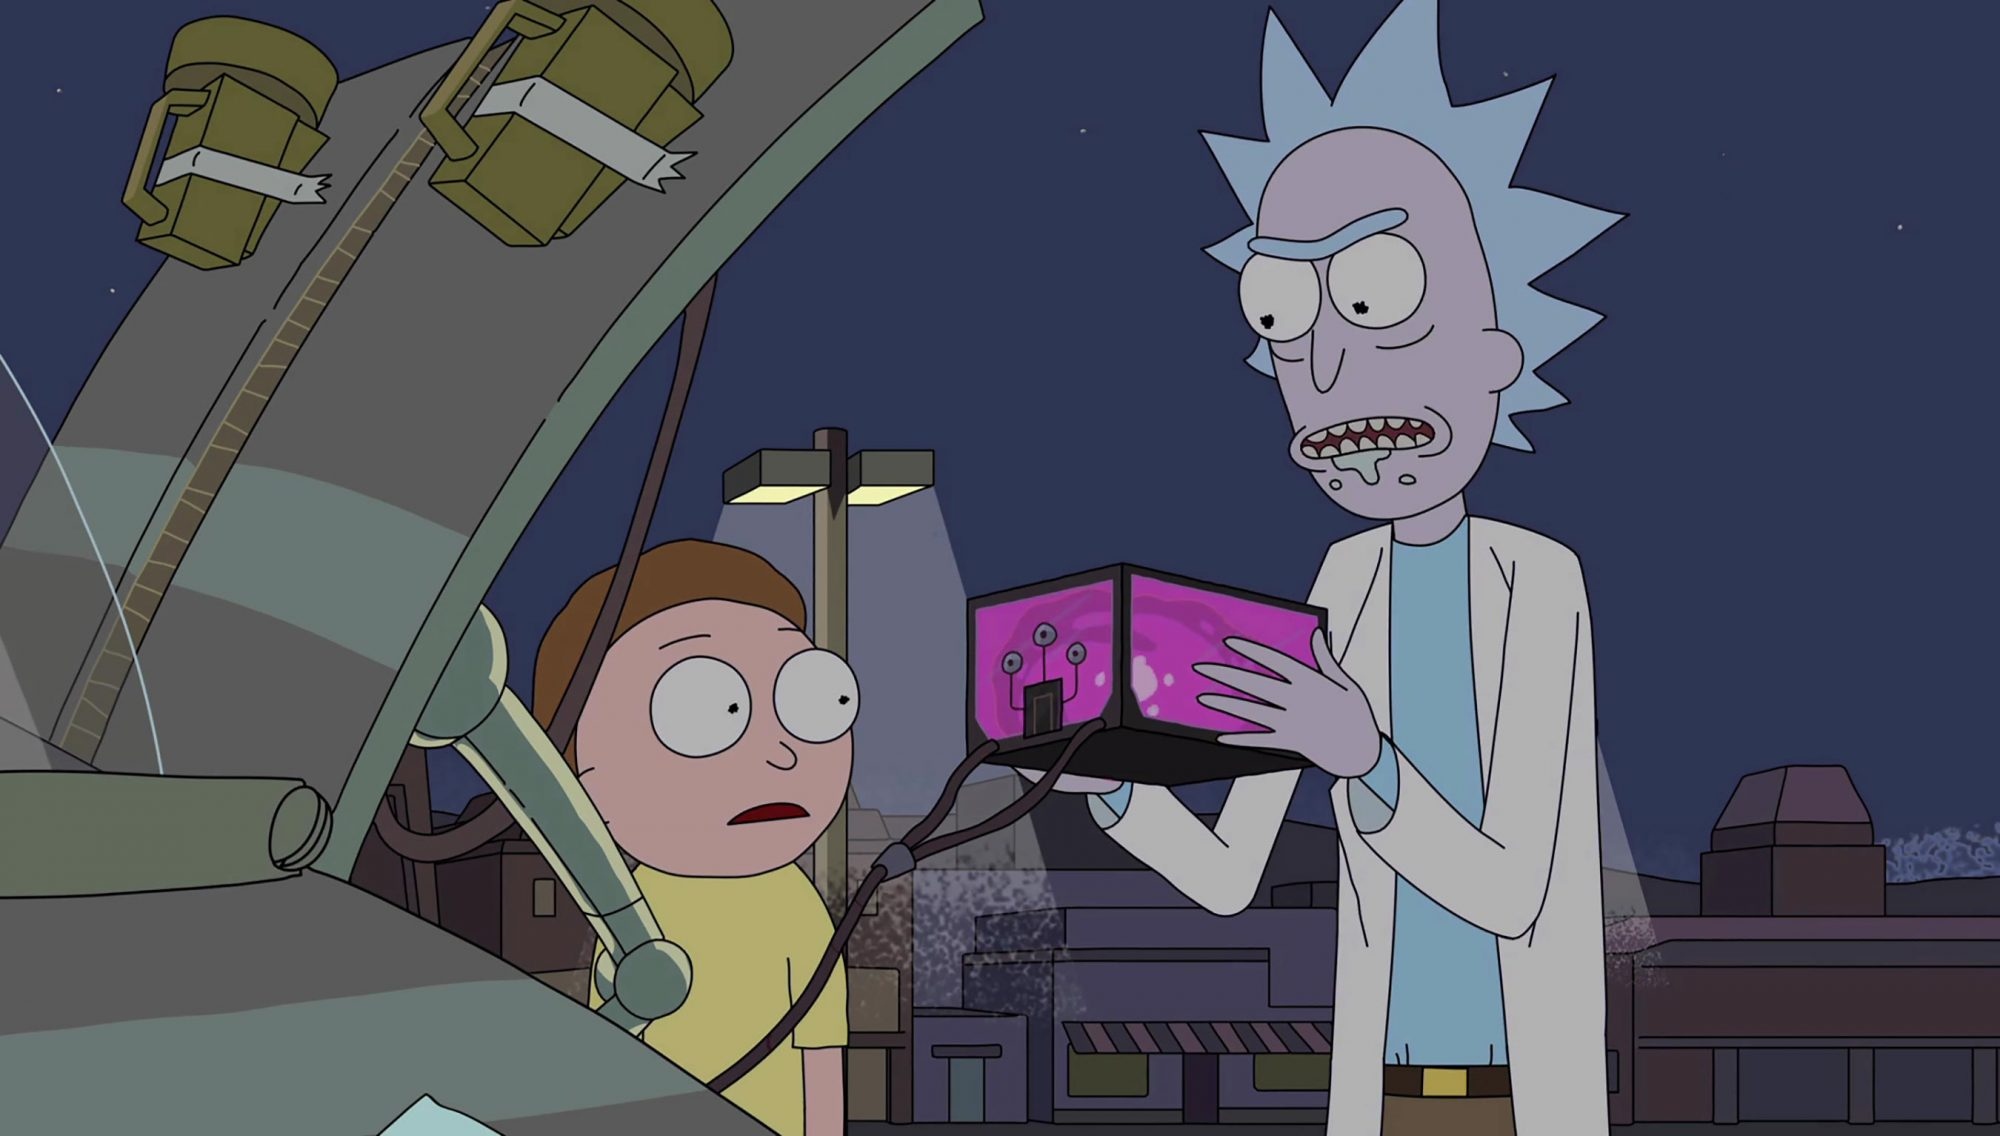 Ricky and Morty - Microverse Battery (Season 2, Episode 6)